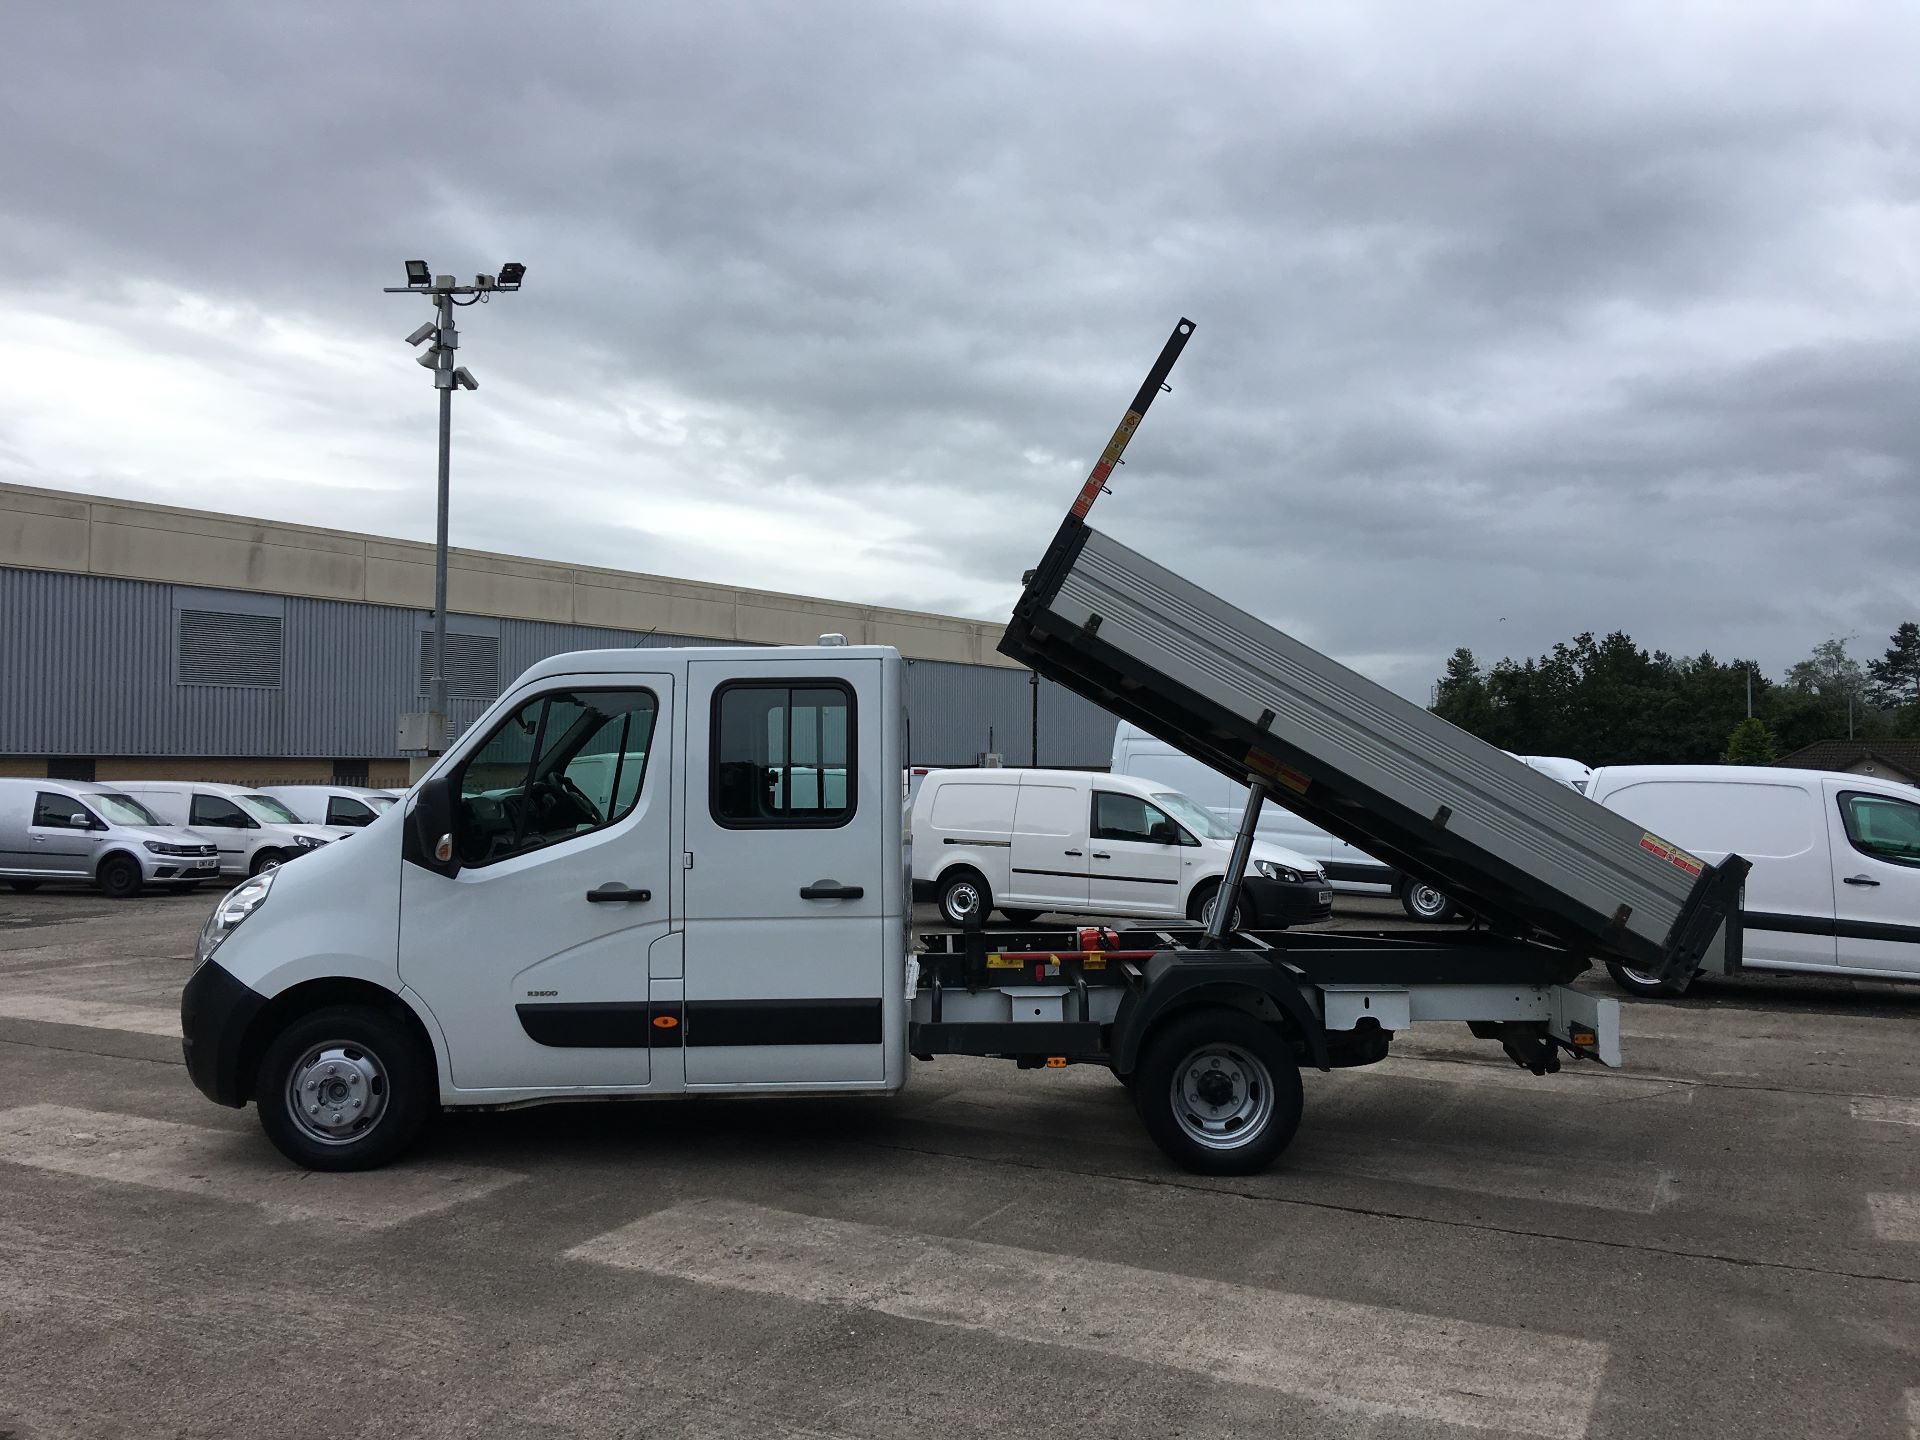 2016 Vauxhall Movano 35 L3 DIESEL RWD 2.3 CDTI 125PS D/CAB TIPPER EURO 5 (YT16WLR) Image 17